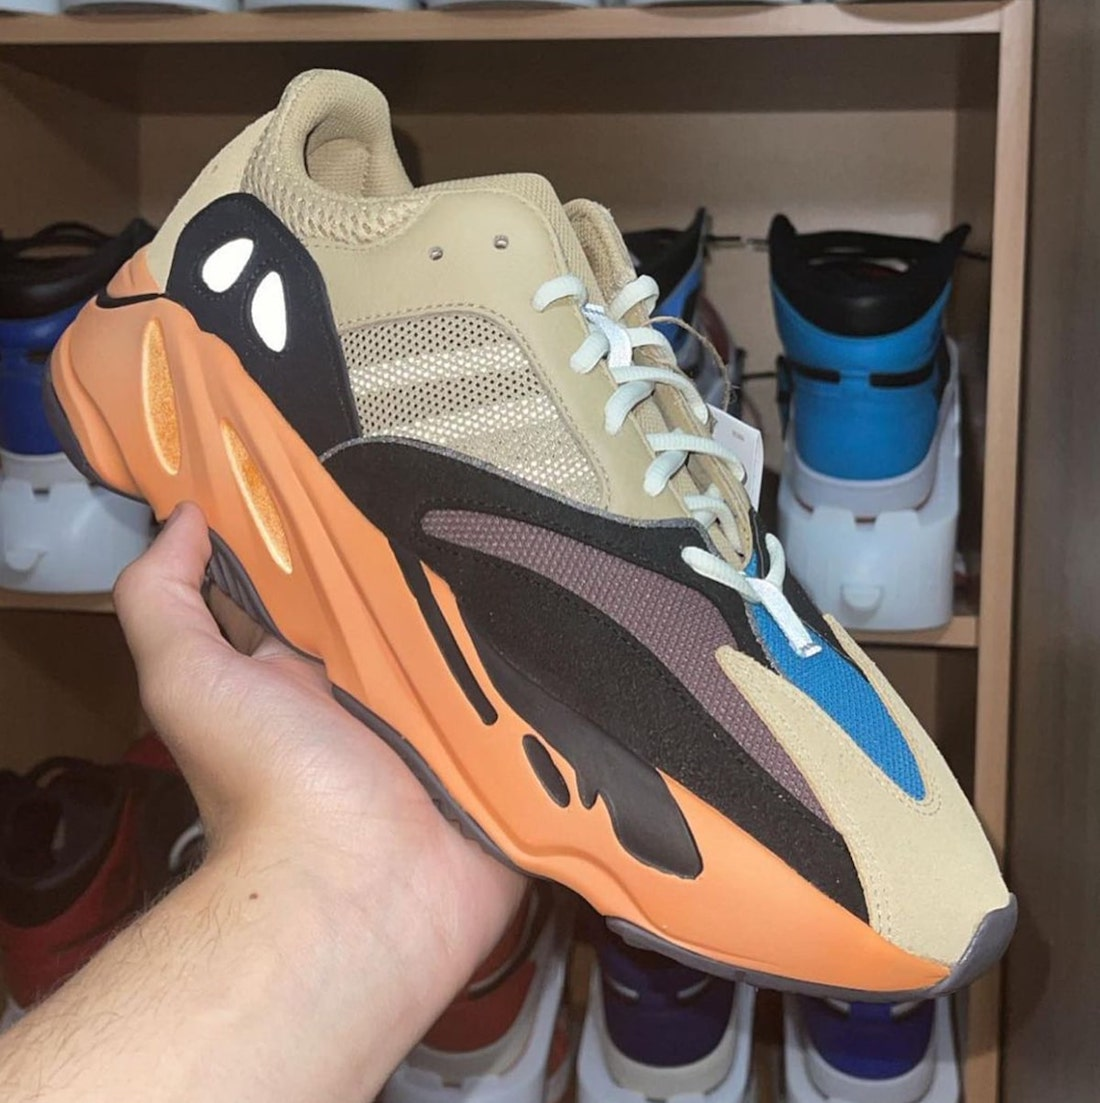 adidas Yeezy Boost 700 Enflame Amber Release Date Price